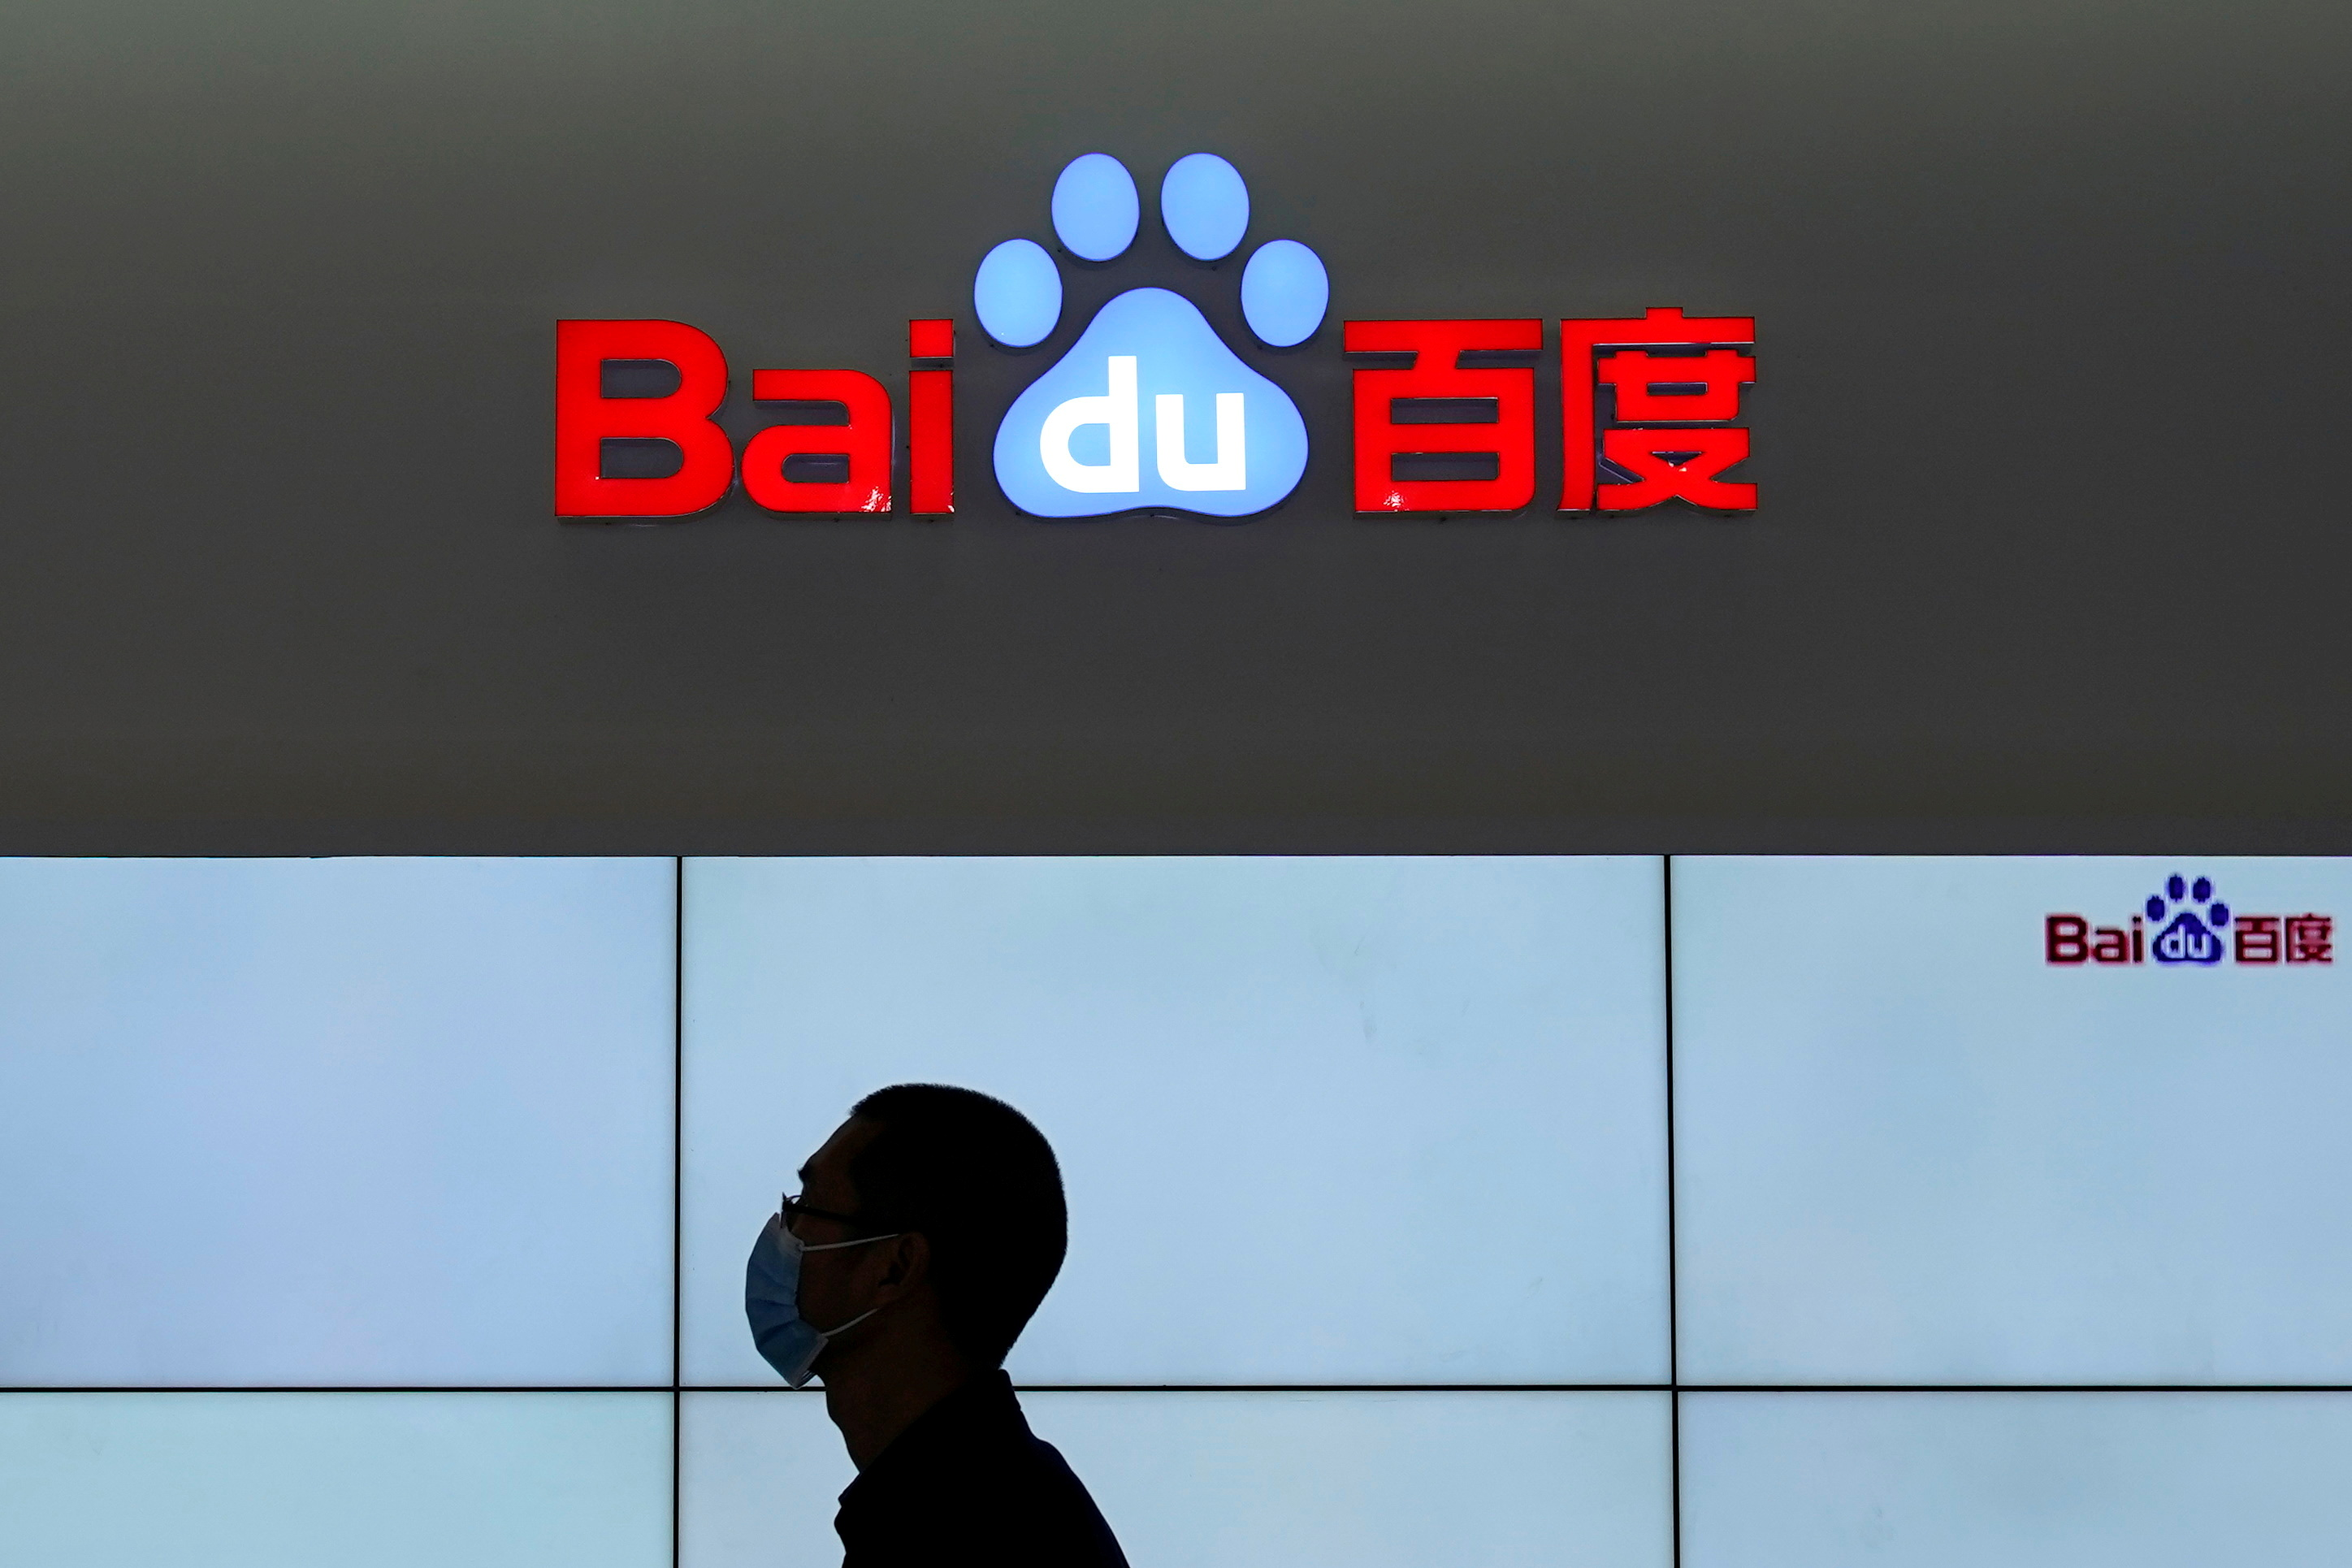 A logo of Baidu is seen during the World Internet Conference (WIC) in Wuzhen, Zhejiang province, China, November 23, 2020. REUTERS/Aly Song